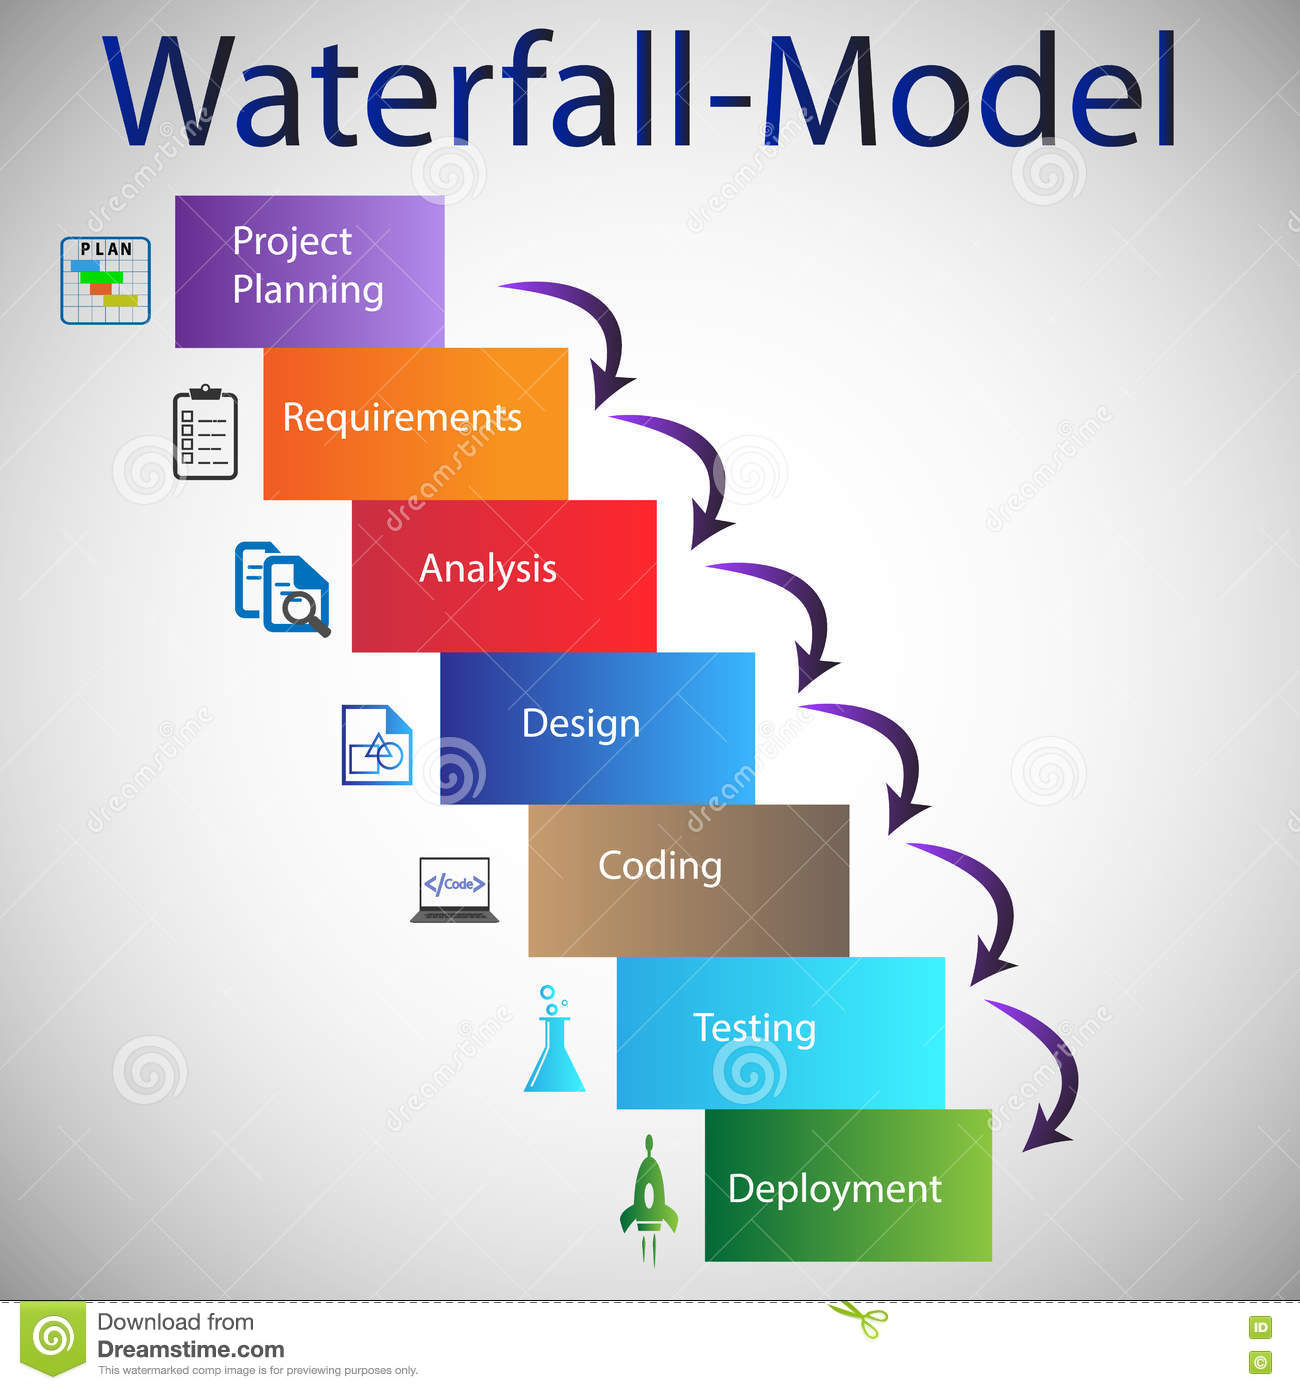 sdlc waterfall model Sdlc quick guide - learn software development life cycle starting with sdlc overview and covering various models like waterfall model, iterative model, spiral model, v-model, big bang model, agile model, rad model and software prototype model.